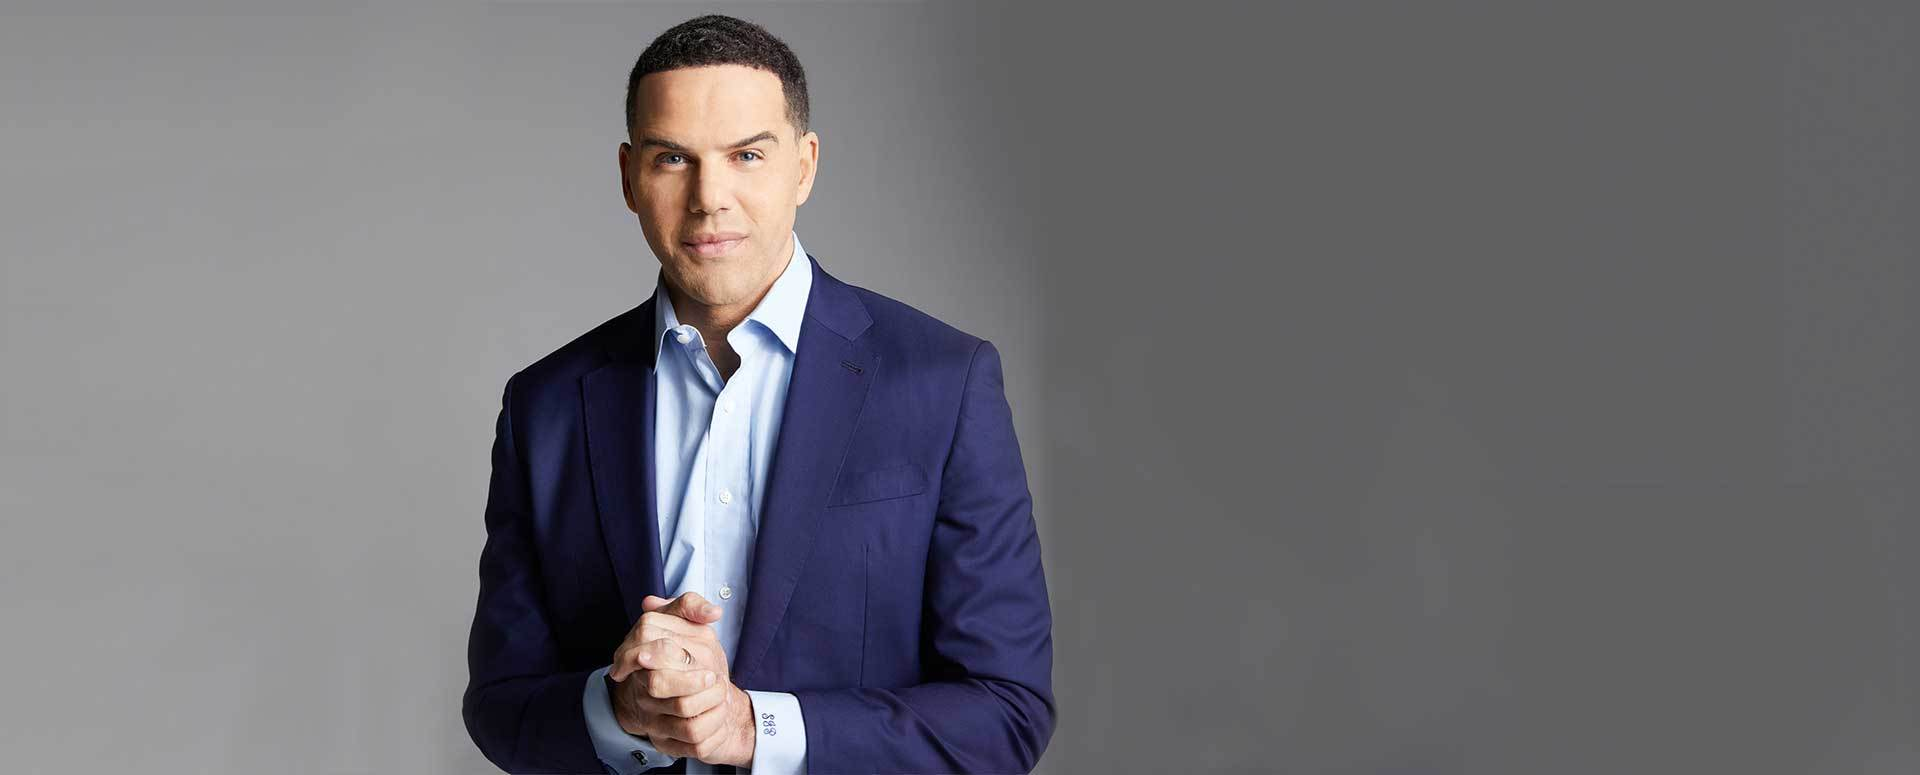 Swell Book Steve Pemberton For Speaking Events And Appearances Ncnpc Chair Design For Home Ncnpcorg